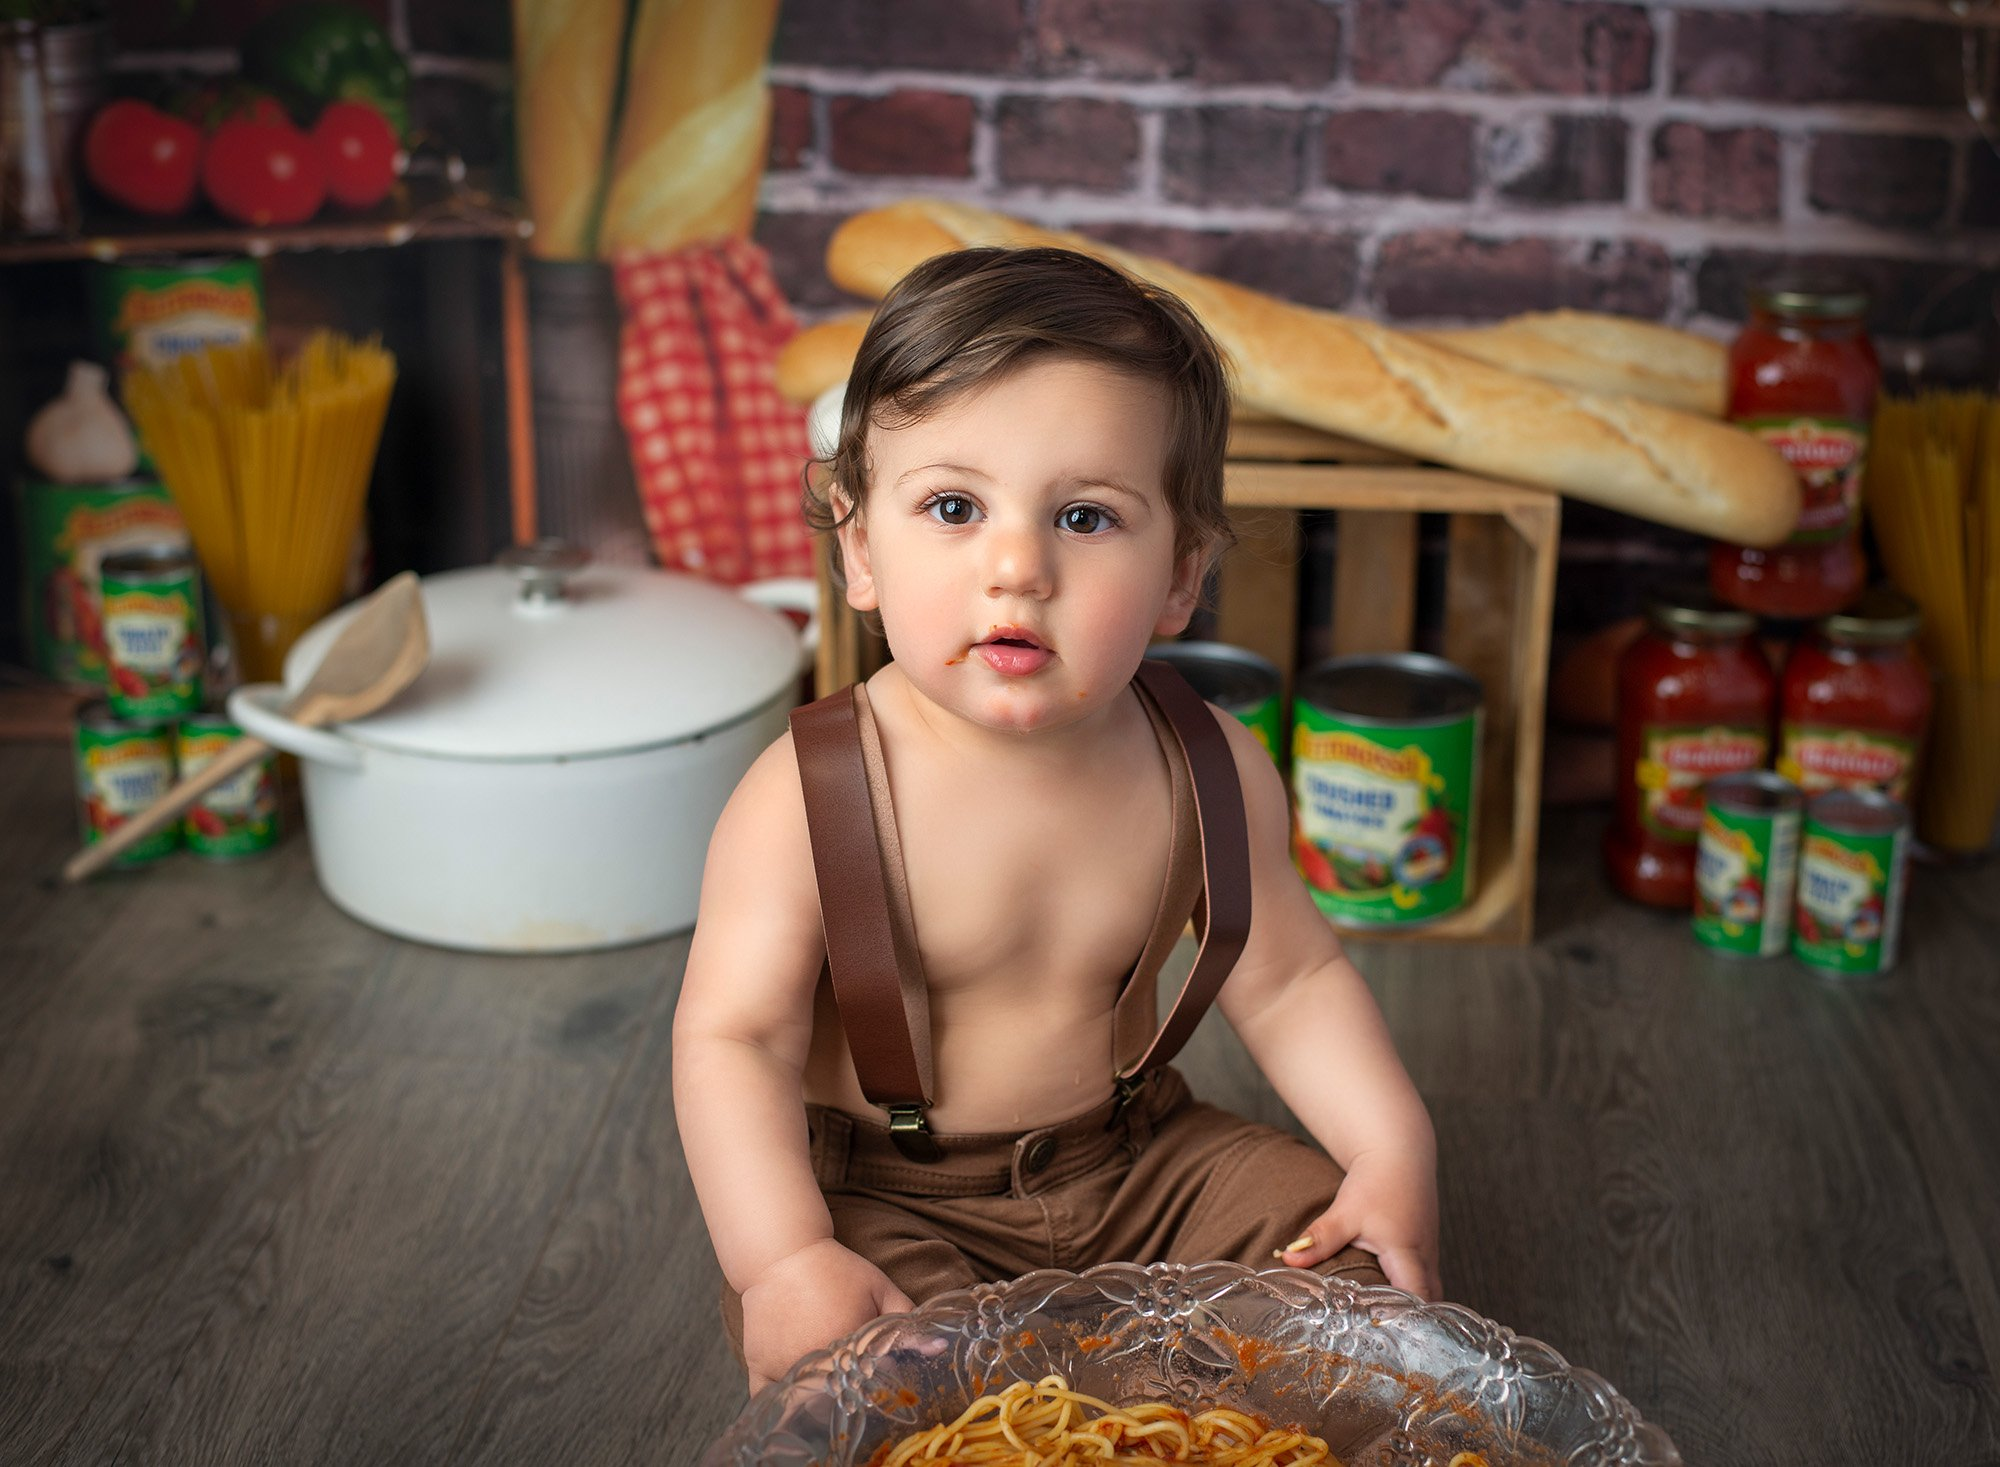 one year old boy wearing overalls with Italian bread and jars of sauce in the background